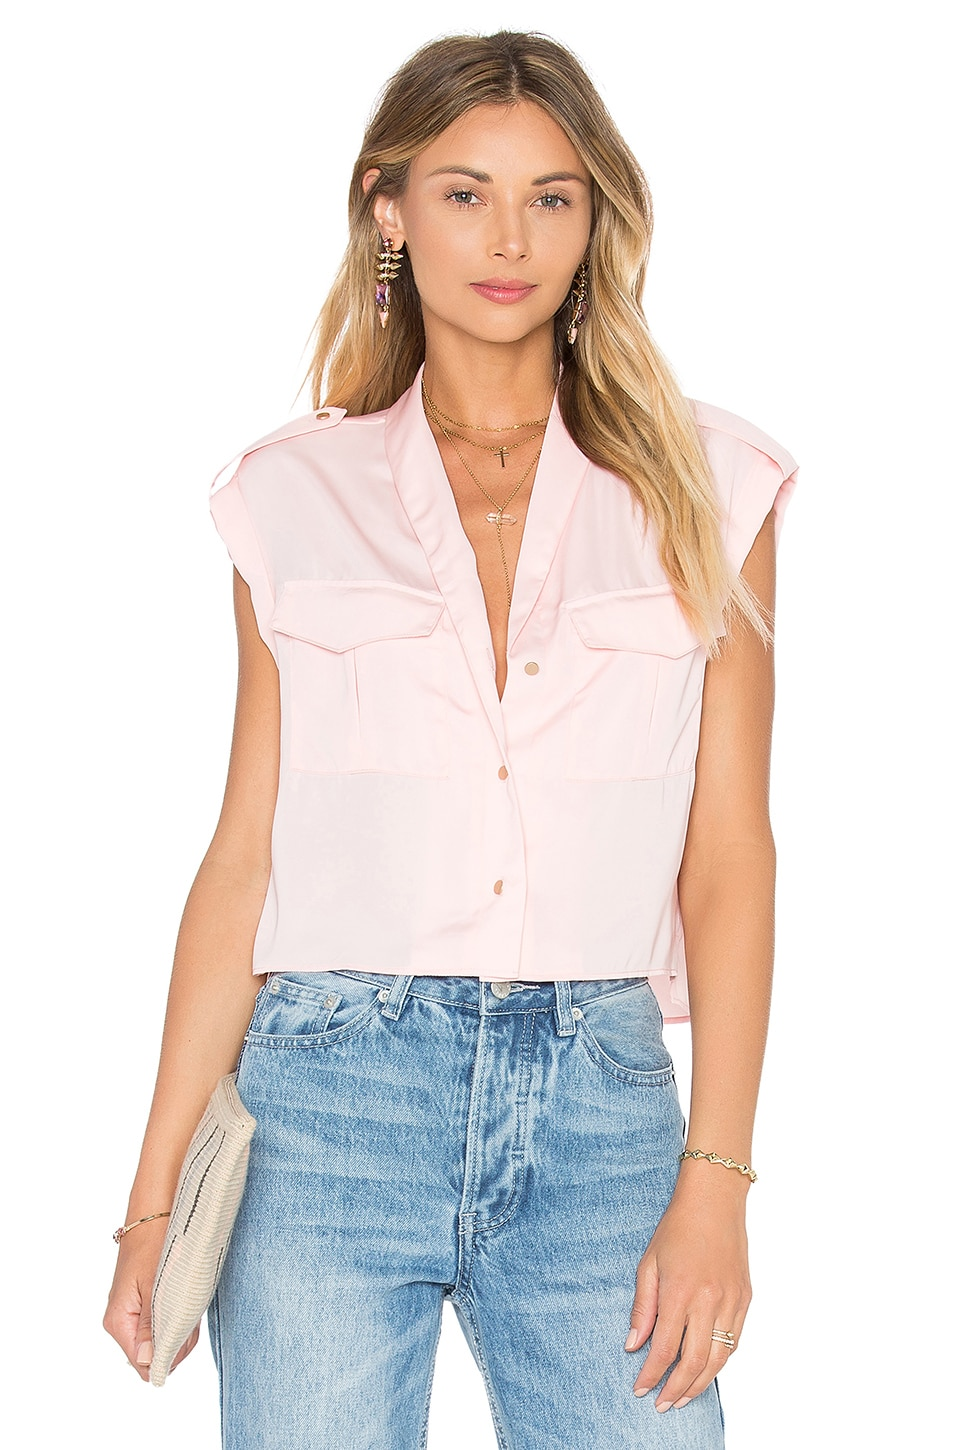 L'Academie The Safari Crop Top Blouse in Blush